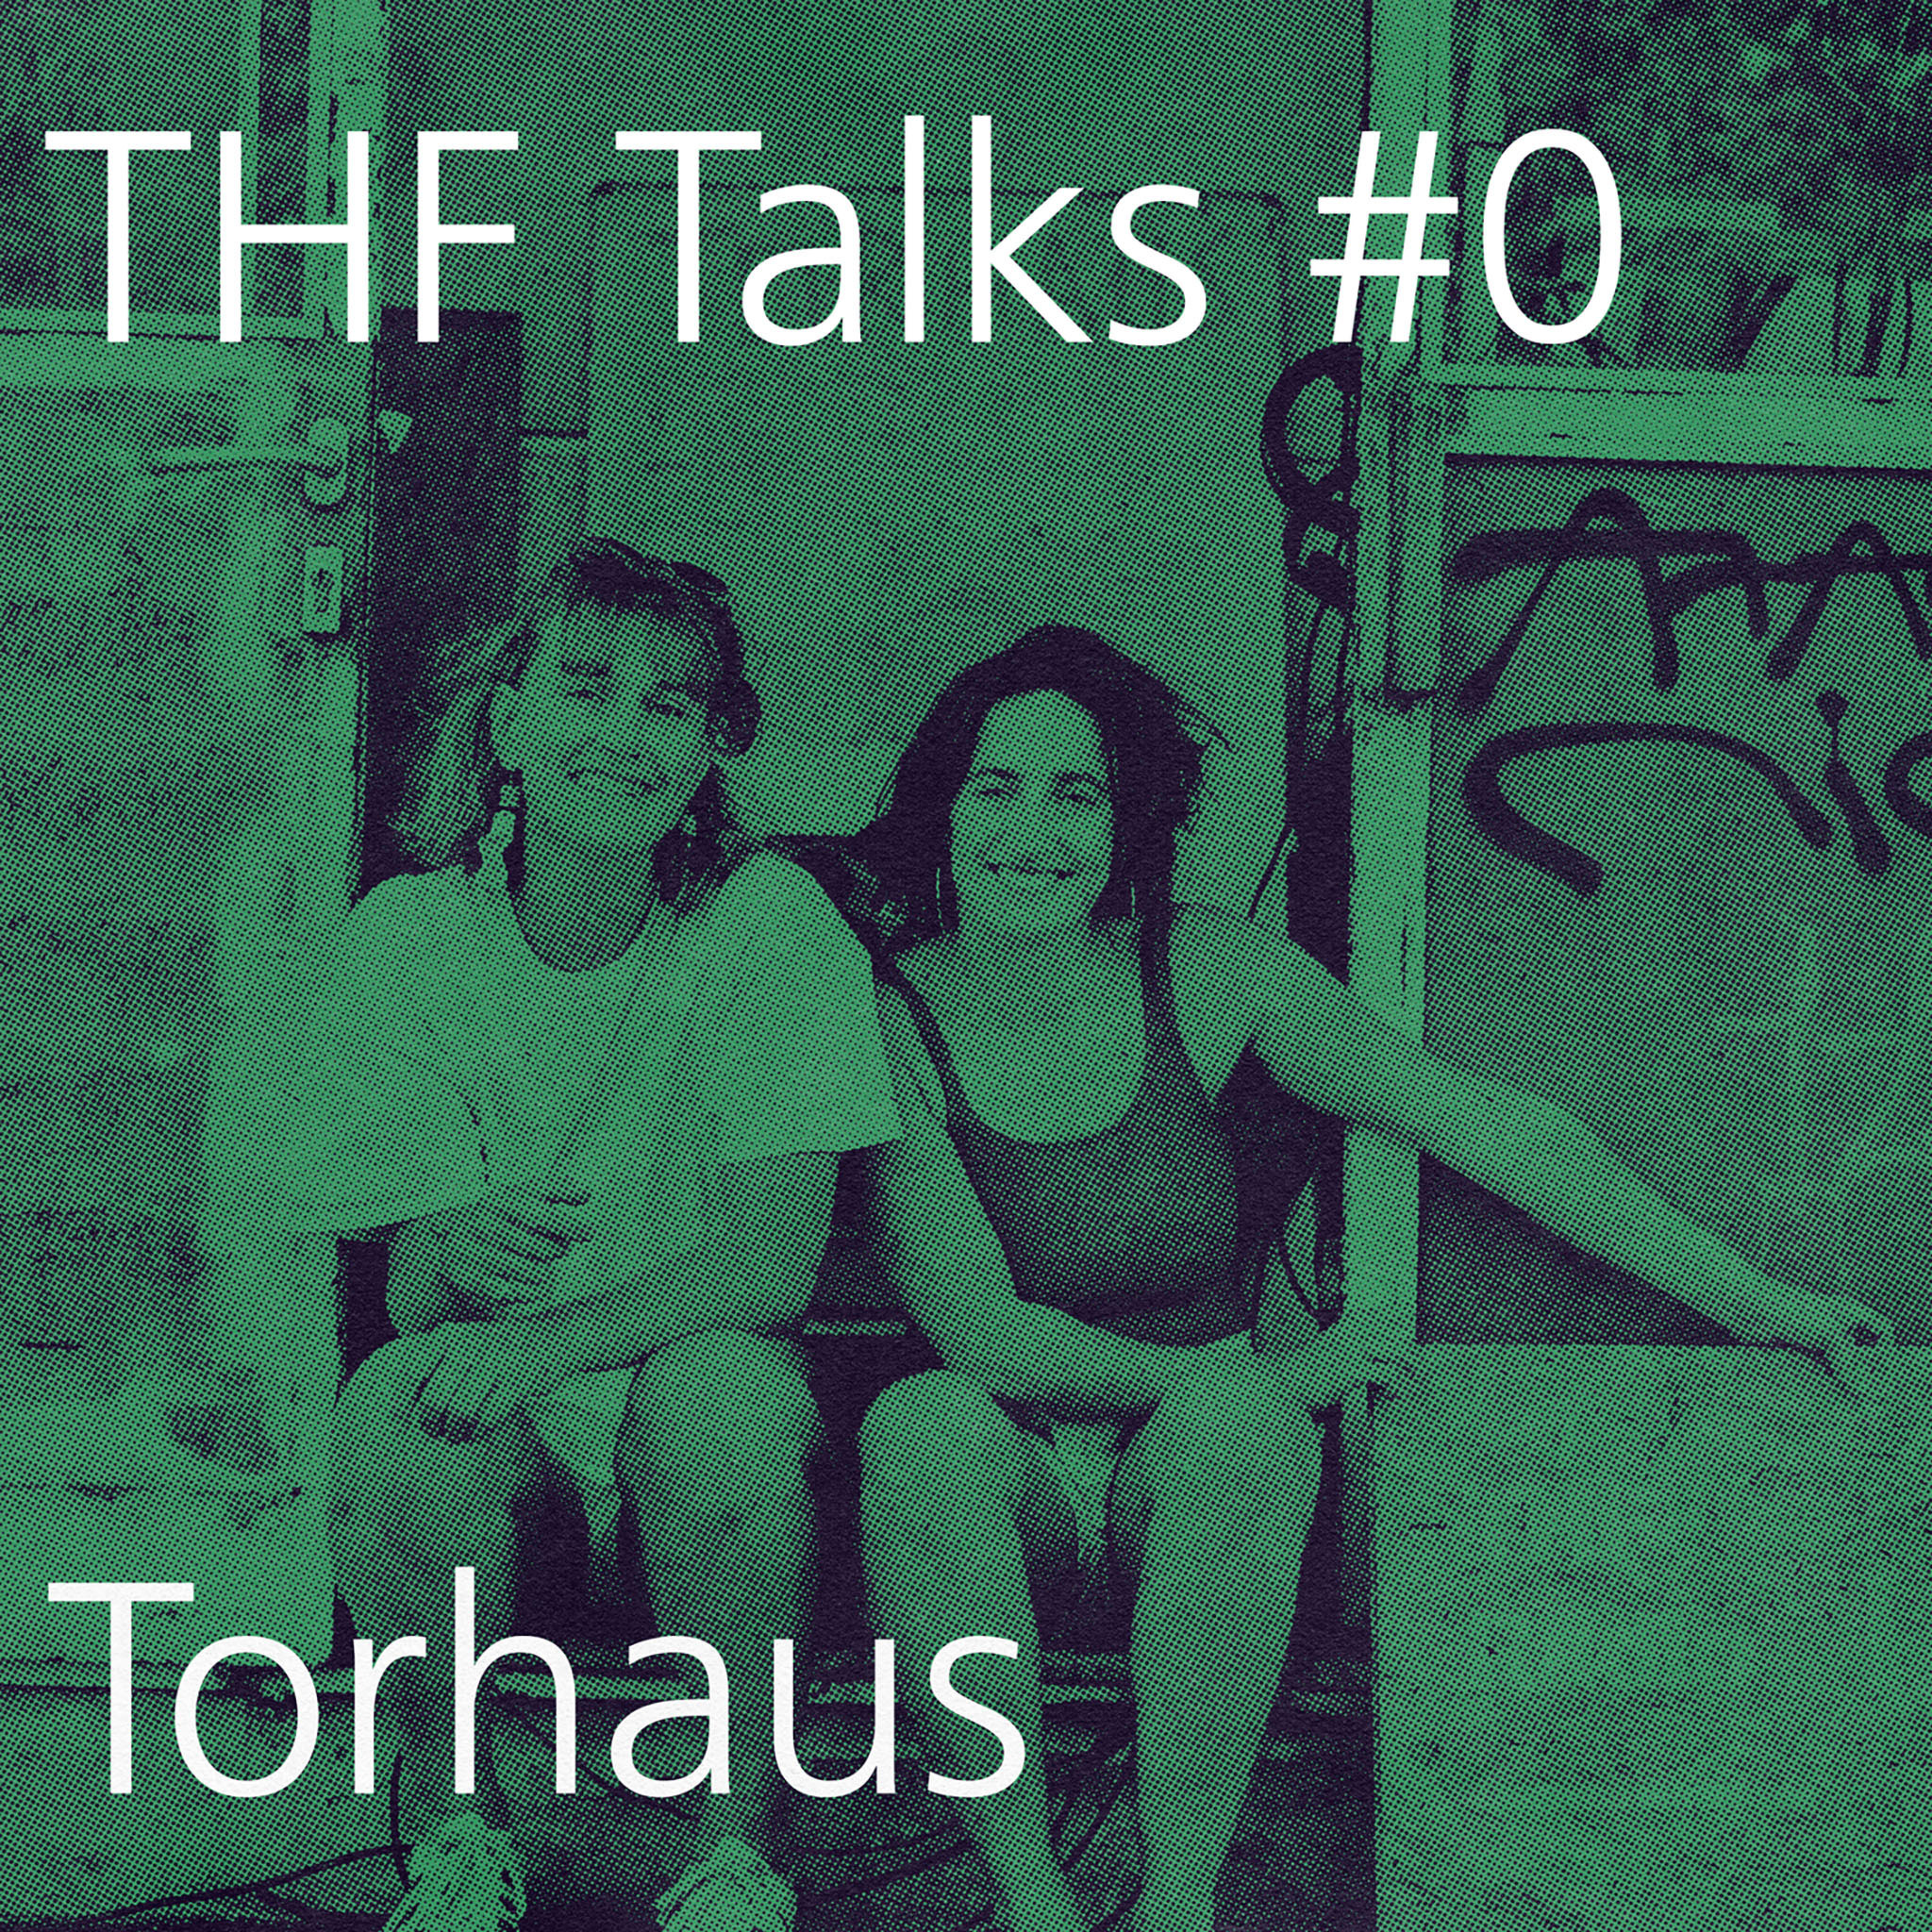 THF Talks #0 Torhaus